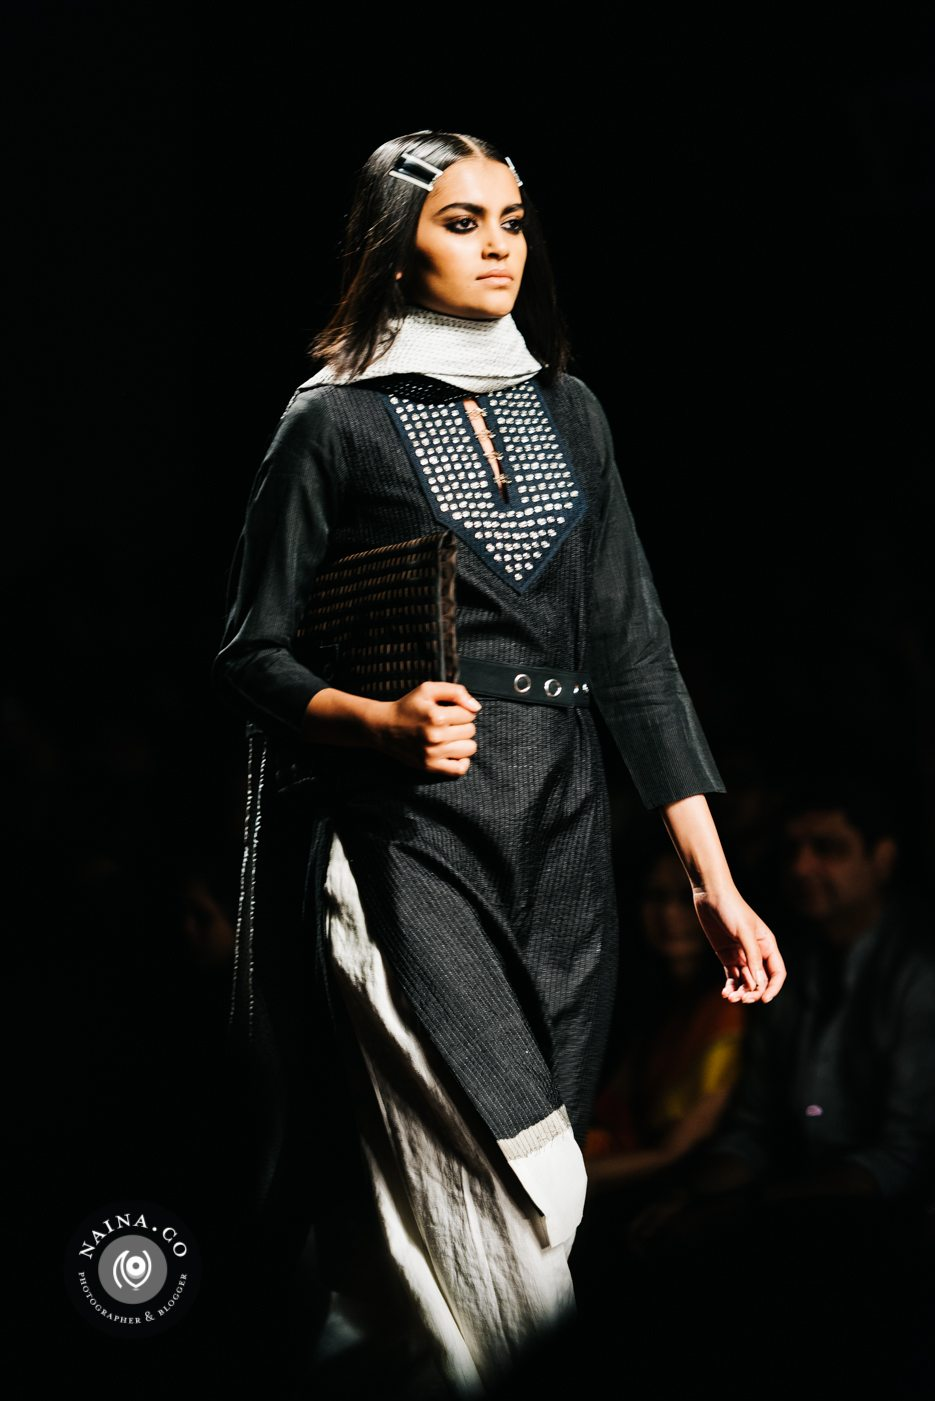 Naina.co-Raconteuse-Visuelle-Photographer-Blogger-Storyteller-Luxury-Lifestyle-AIFWAW15-Abraham-Thakore